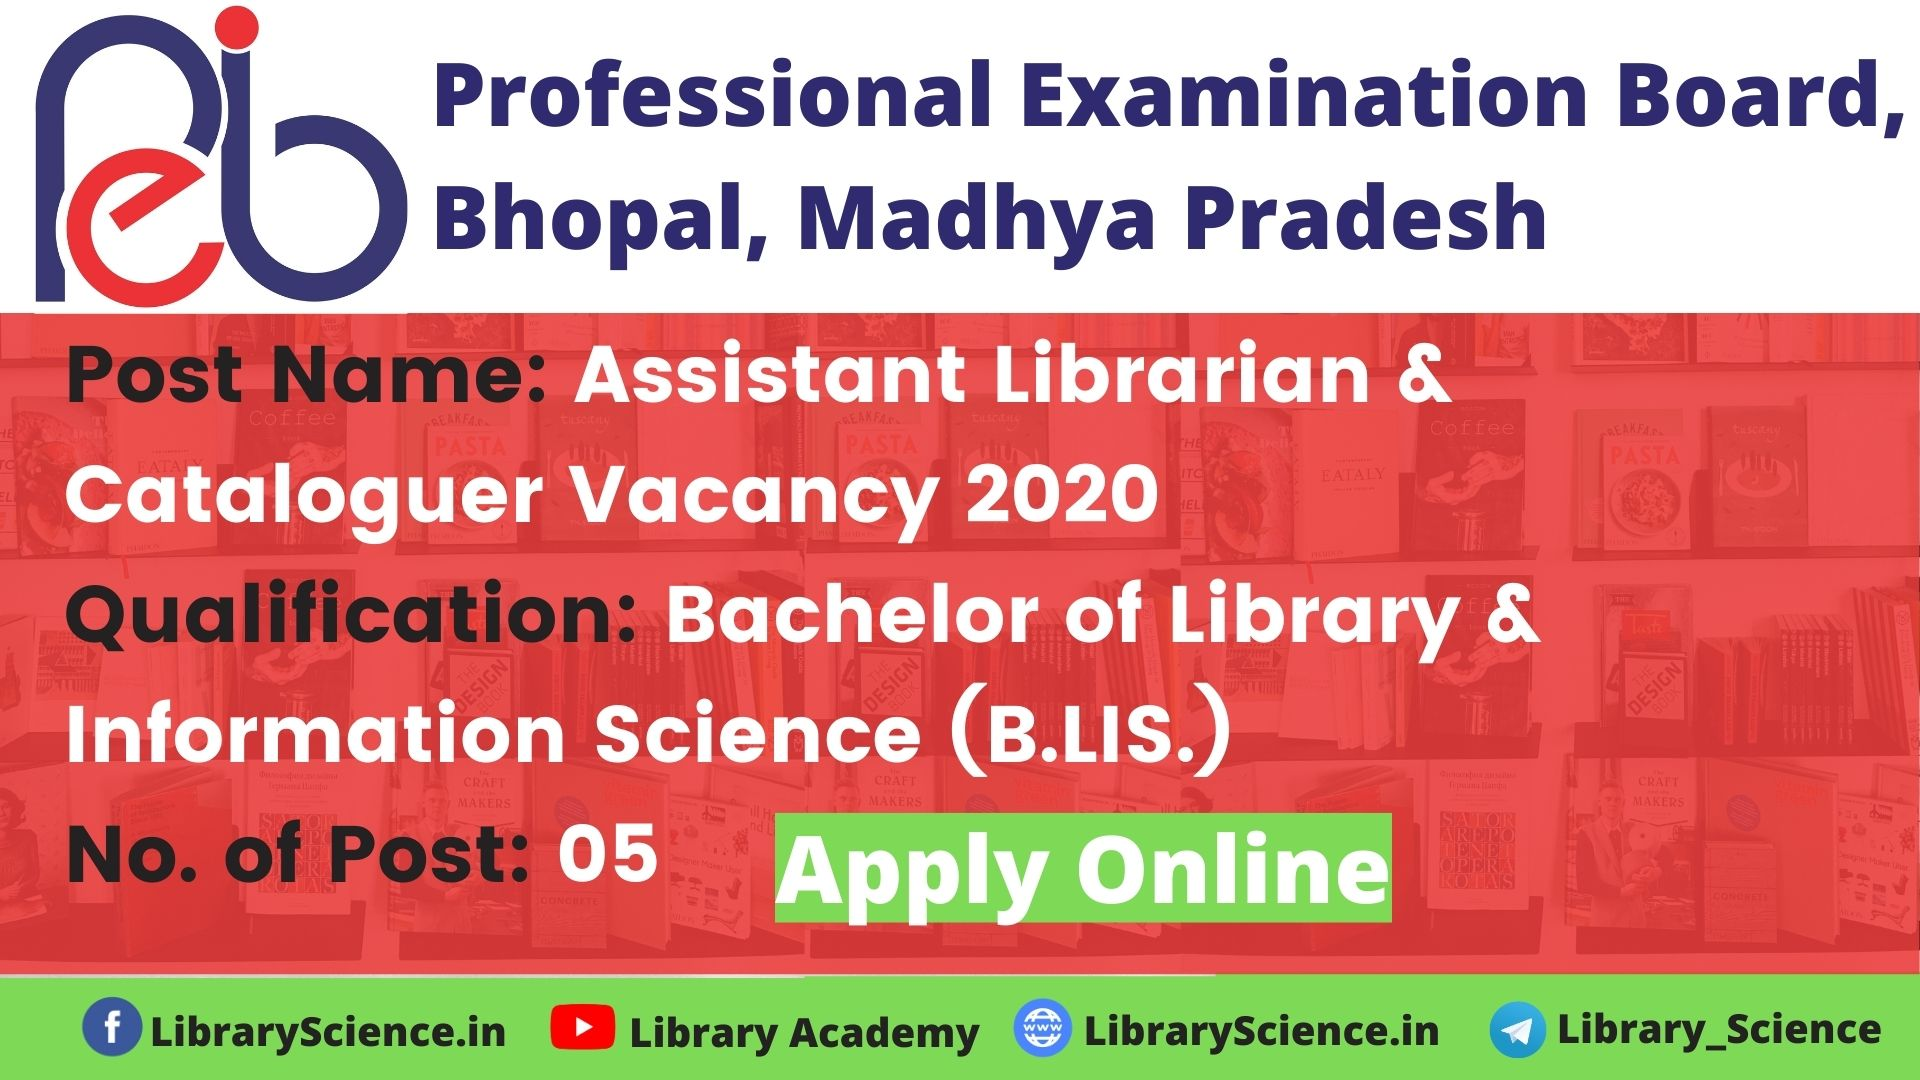 Assistant Librarian & Cataloguer Vacancy 2020 in Madhya Pradesh